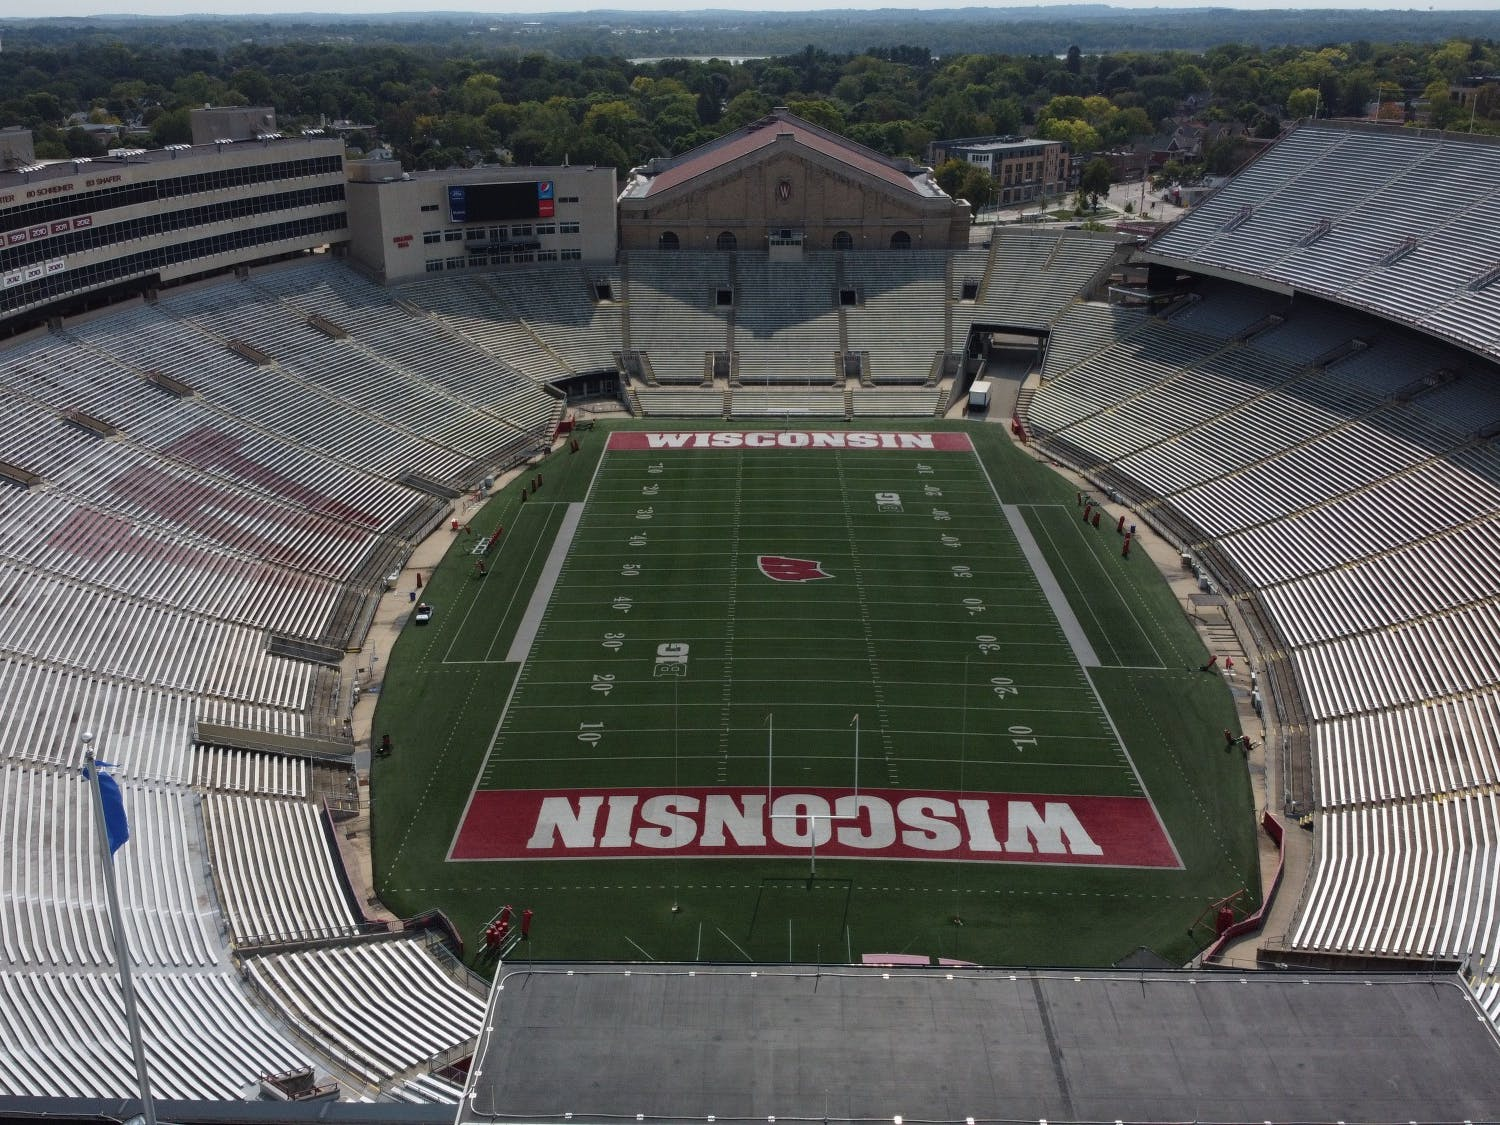 Camp Randall is set to see action for the first time since November 23, 2019.